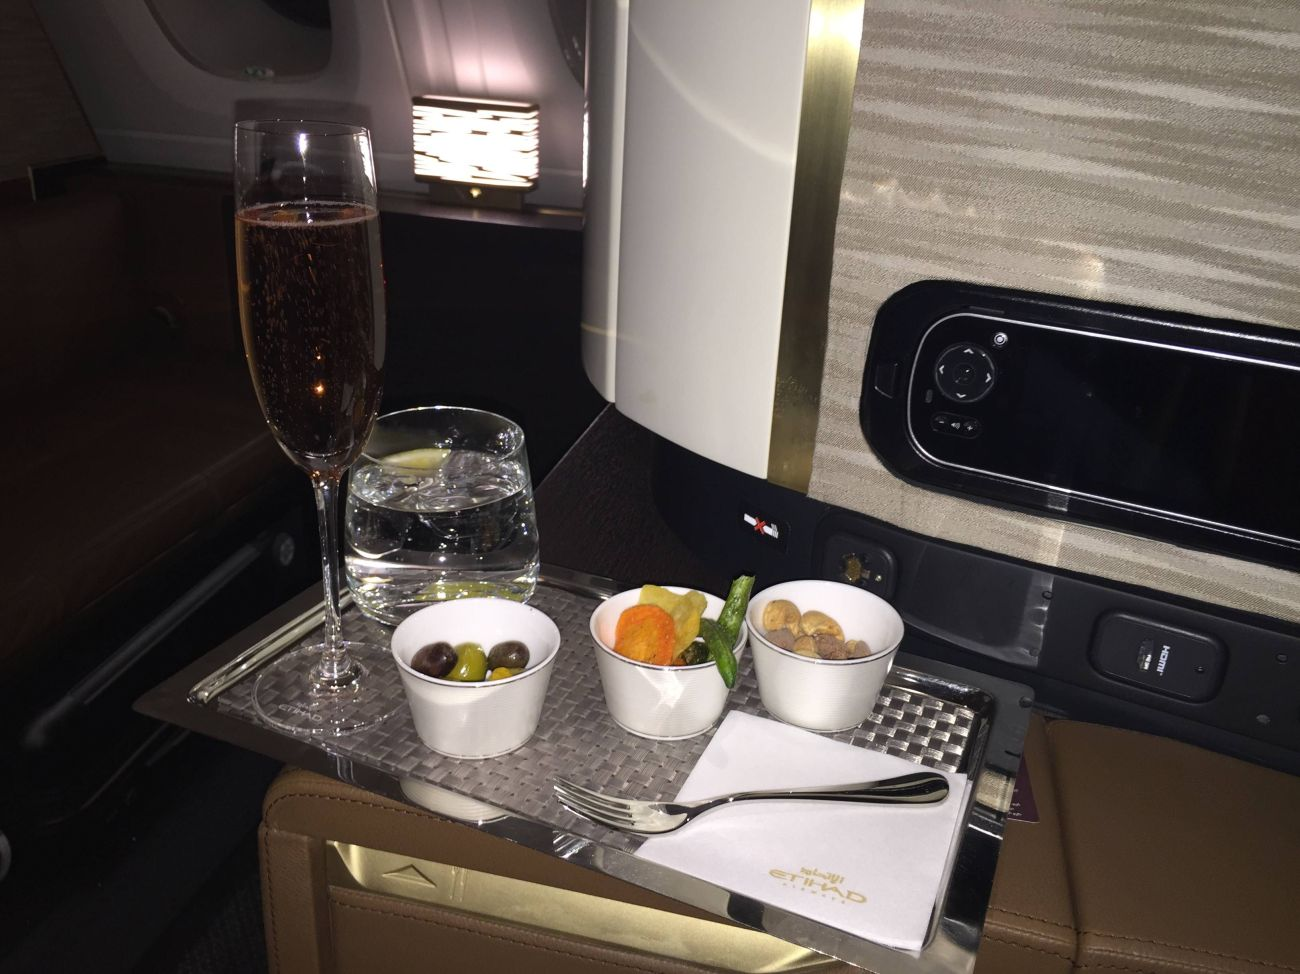 First Class Apartment A380 Etihad - PassageirodePrimeira41